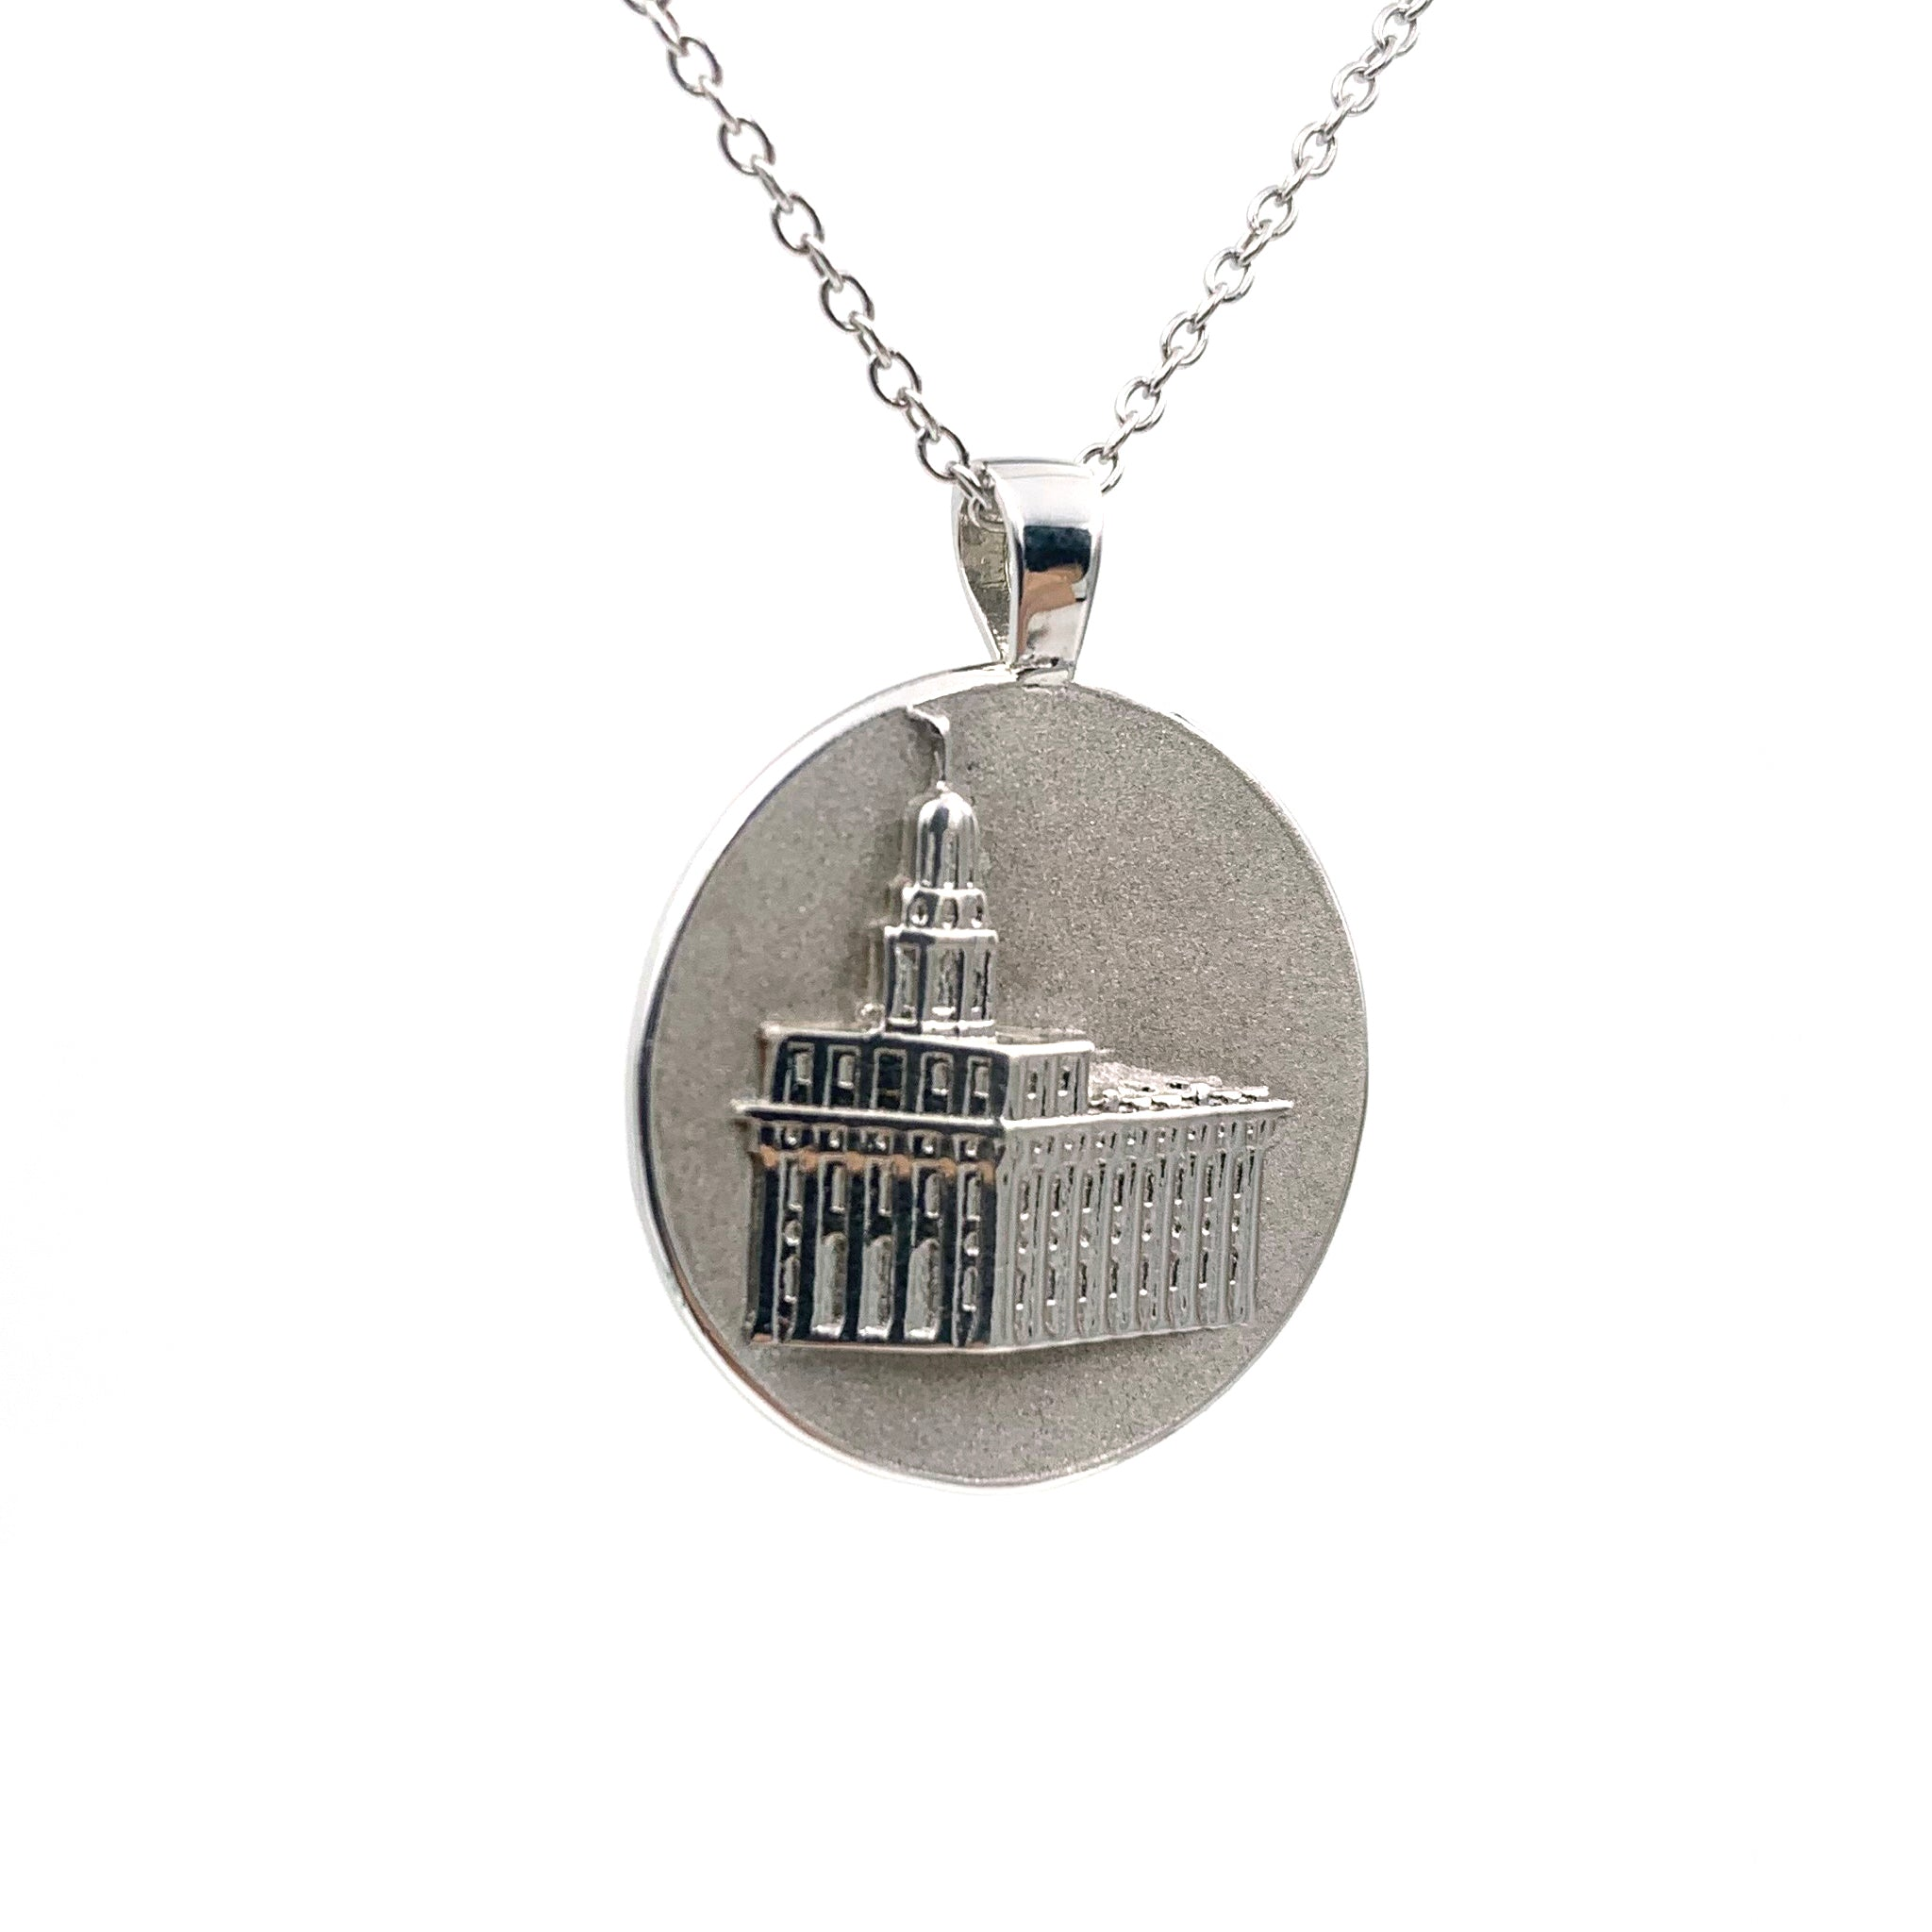 Gold Filled Necklace LDS Temple Necklace LDS Wedding Gift Young Women Necklace Nauvoo Illinois Temple Necklace